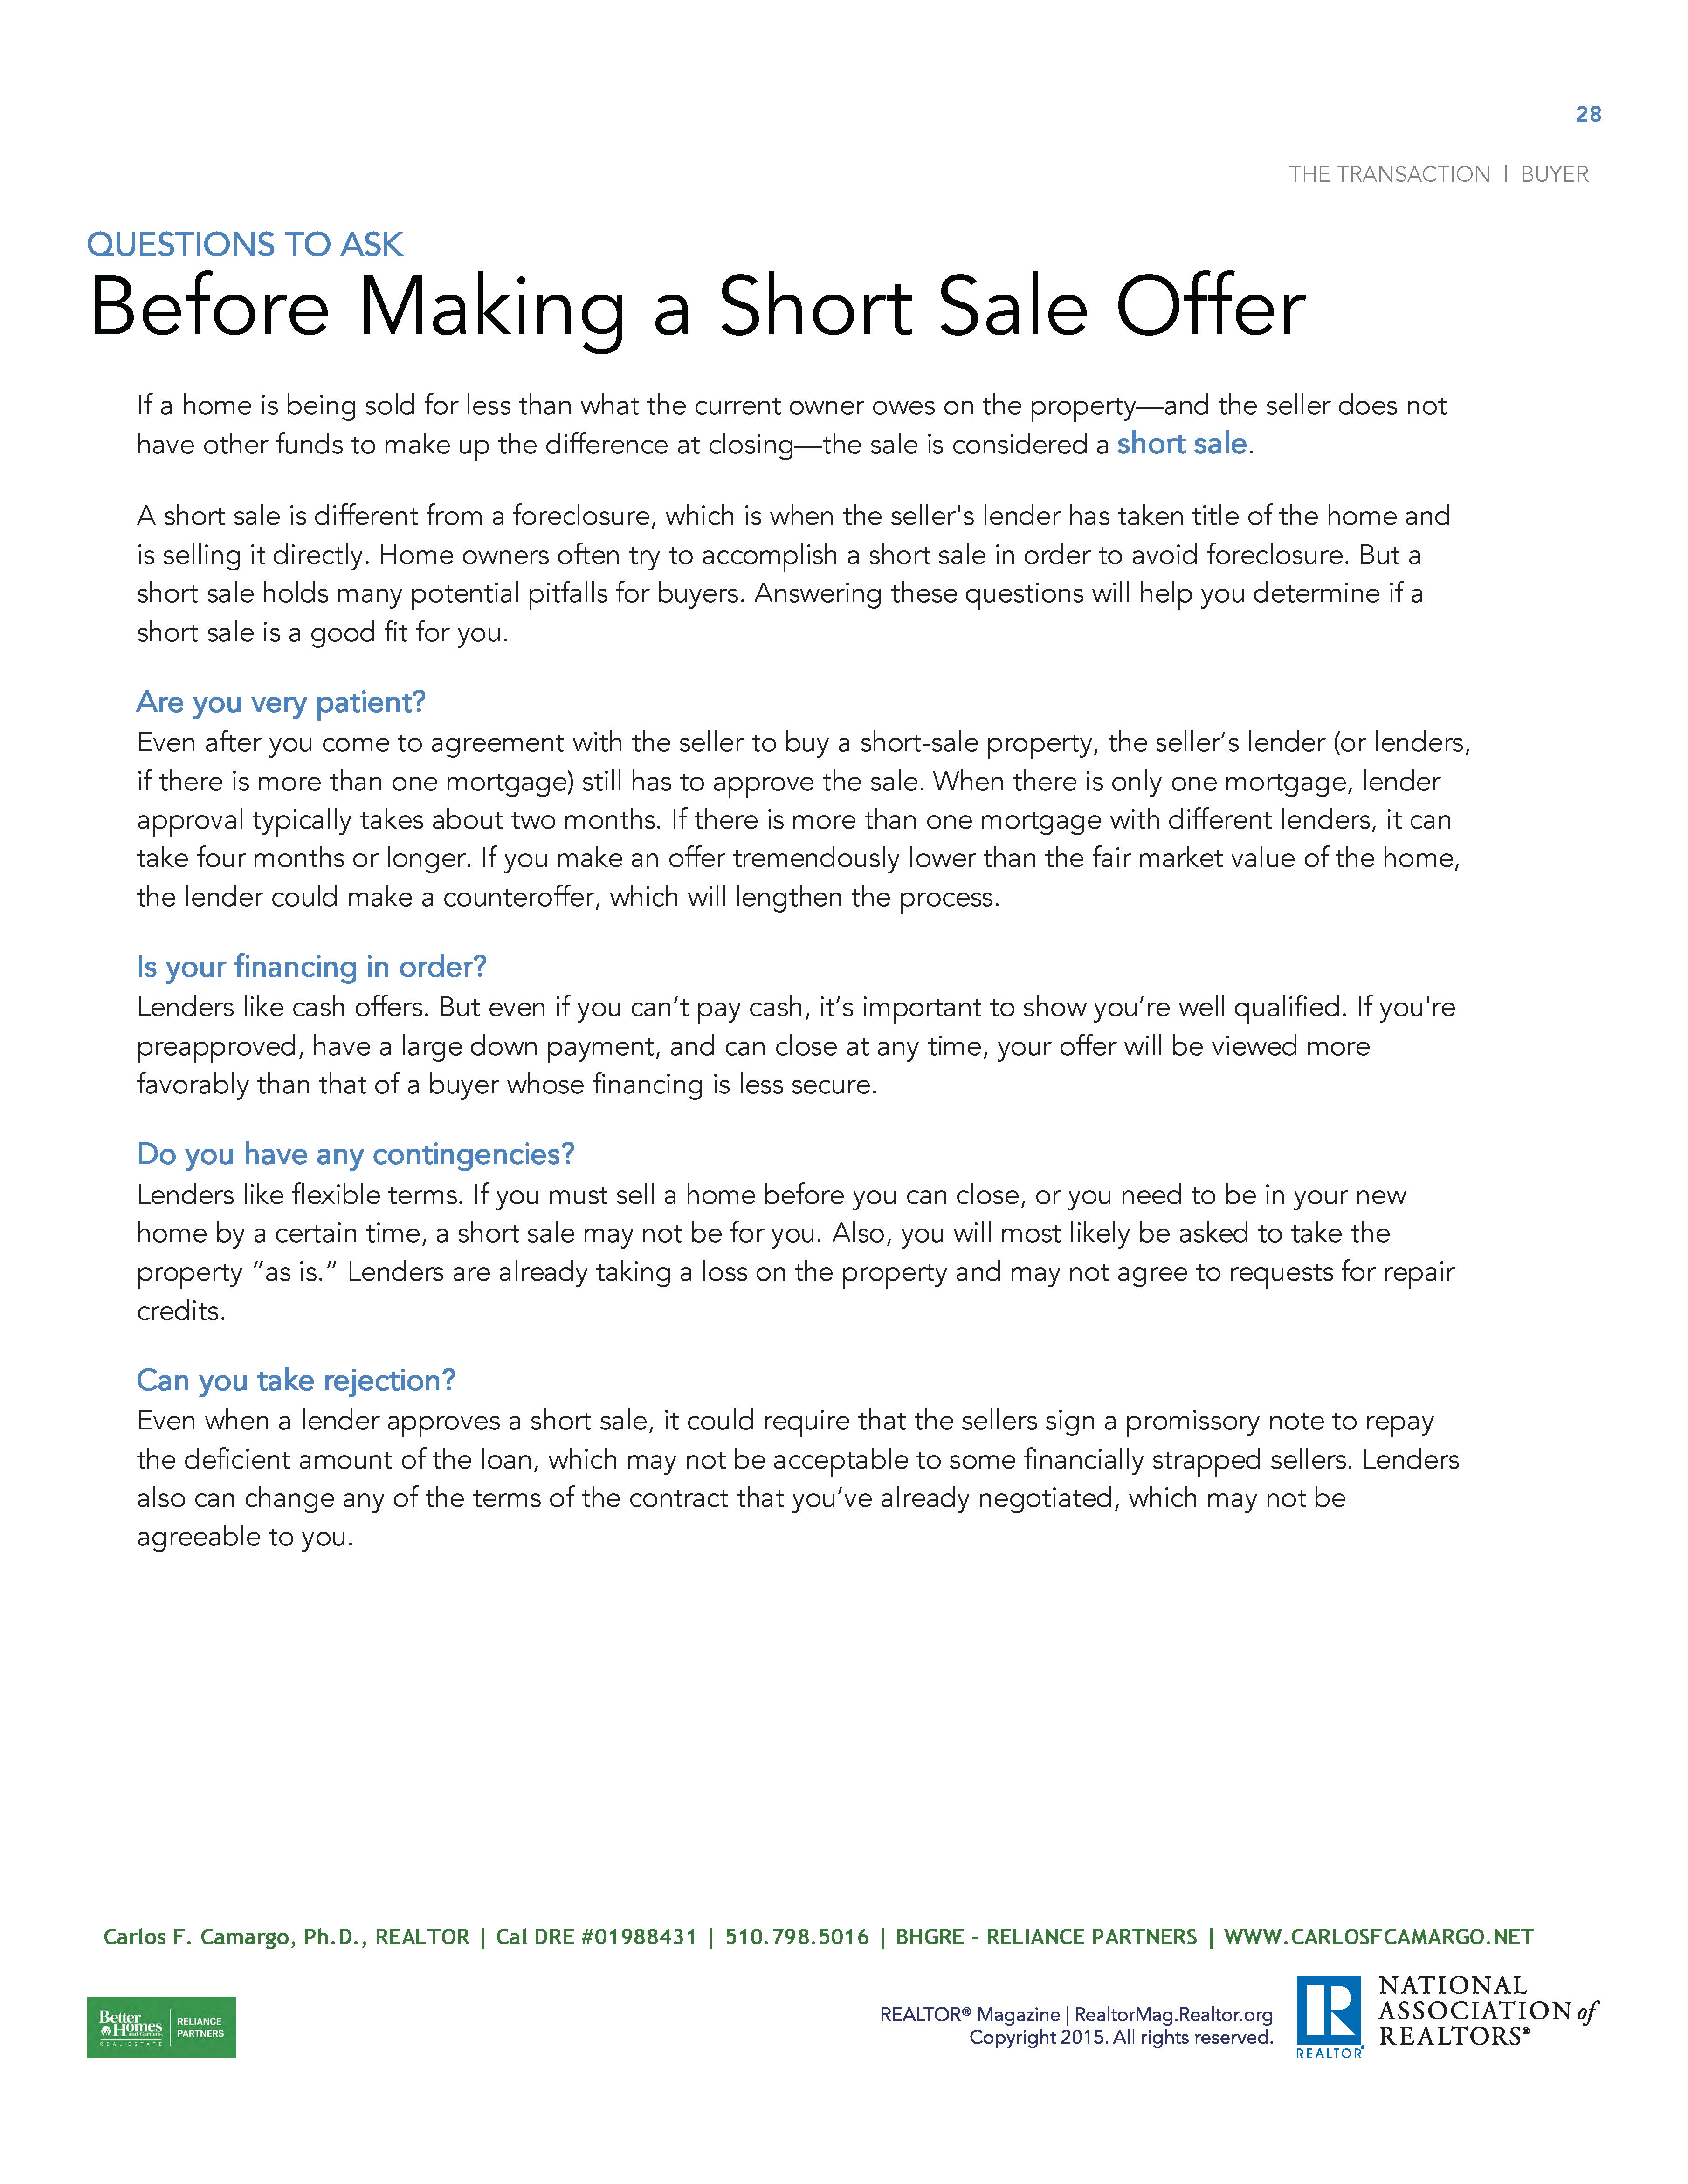 Buying a House Archives - Page 2 of 4 - #NoPlaceLikeHome_EastBay